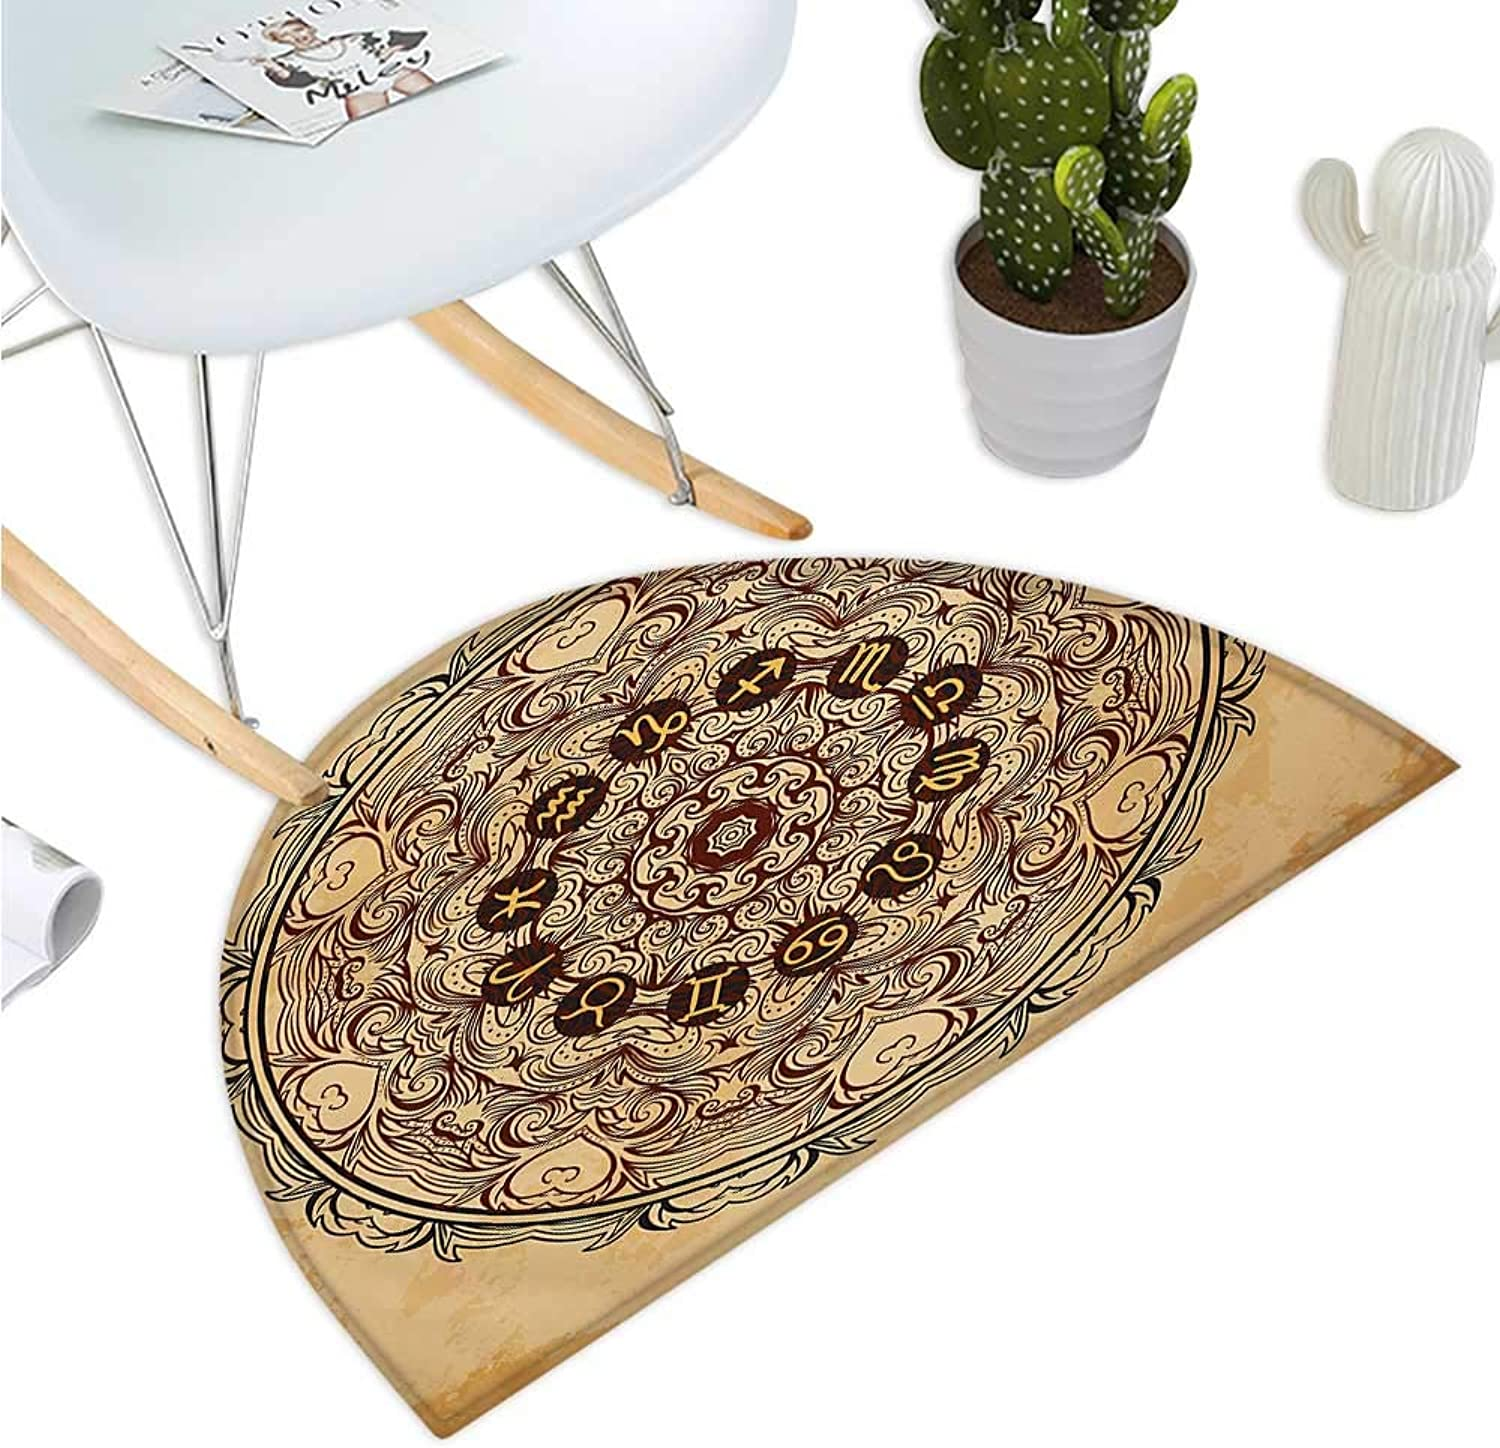 Zodiac Semicircular Cushion Micro Cosmos Universe Icon Eastern Lace Mandala Form with Signs on Grunge Backdrop Entry Door Mat H 39.3  xD 59  Brown Tan